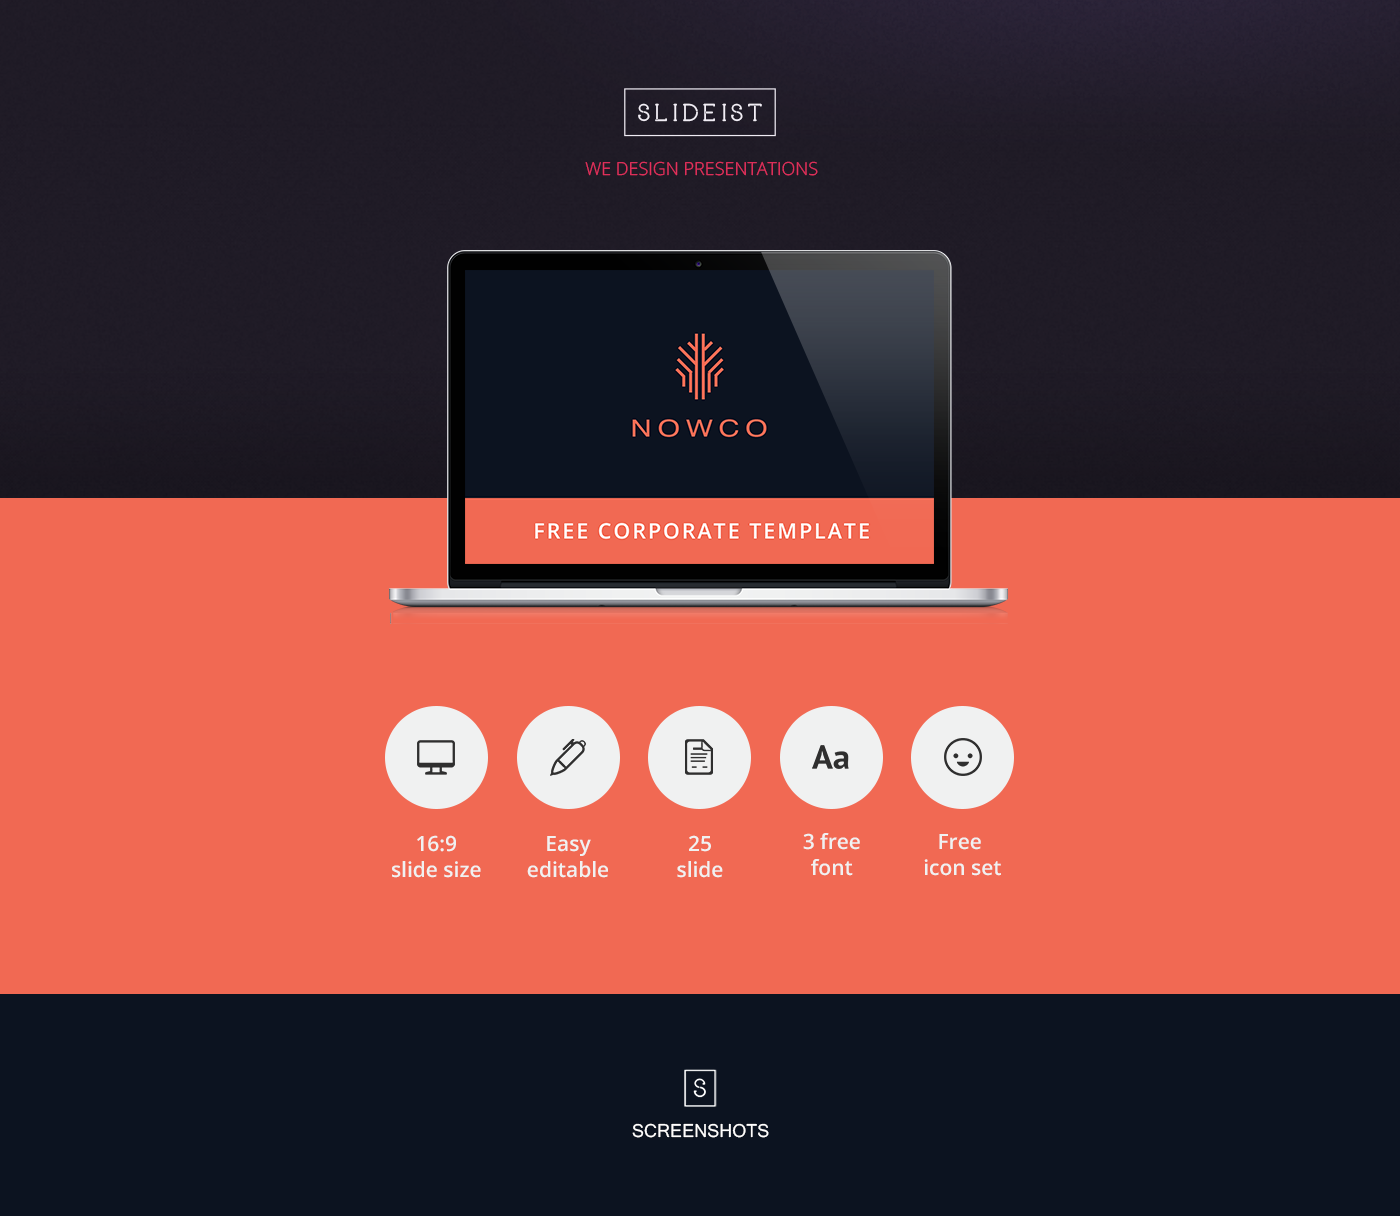 Template Powerpoint Gratis: NOWCO // Free PowerPoint Presentation Template On Behance